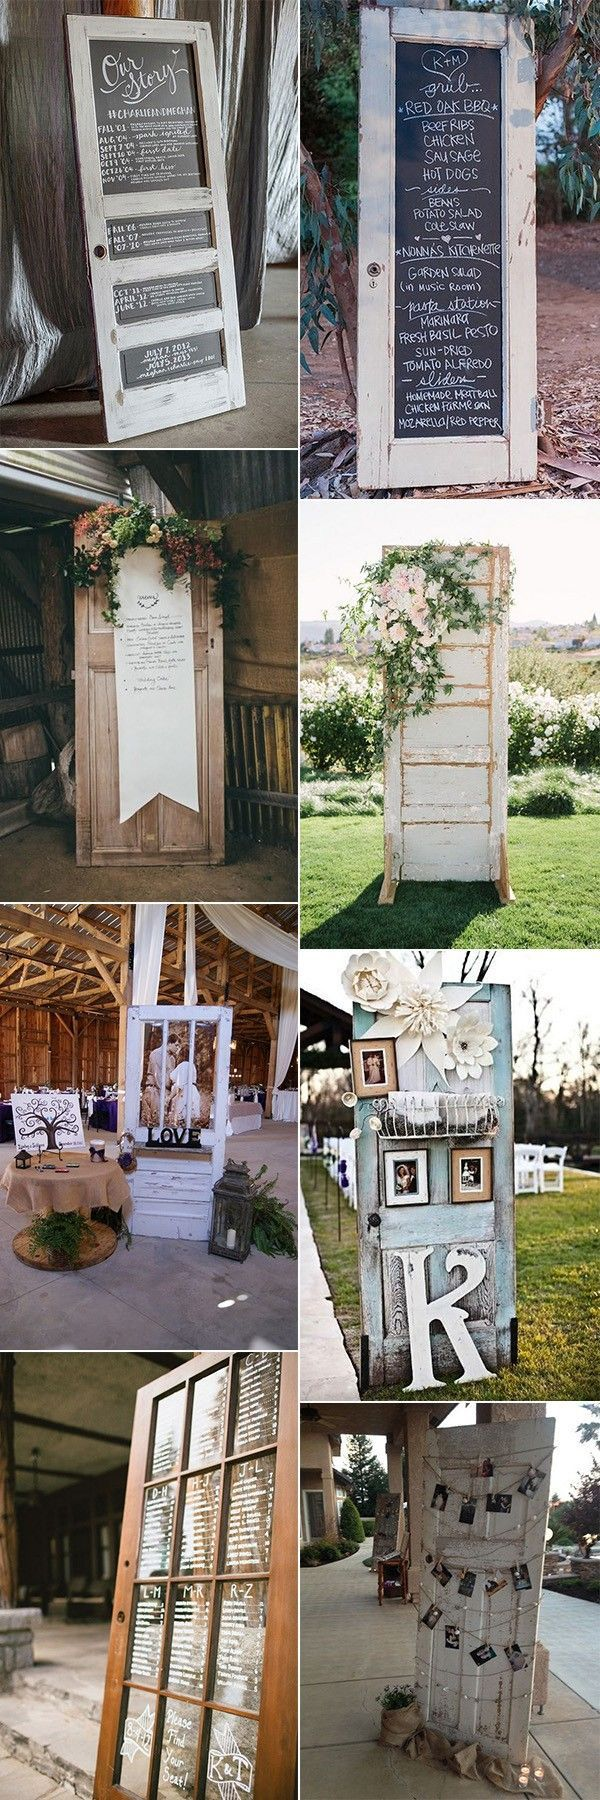 Yard wedding decoration ideas  country rustic wedding decoration ideas with vintage doors